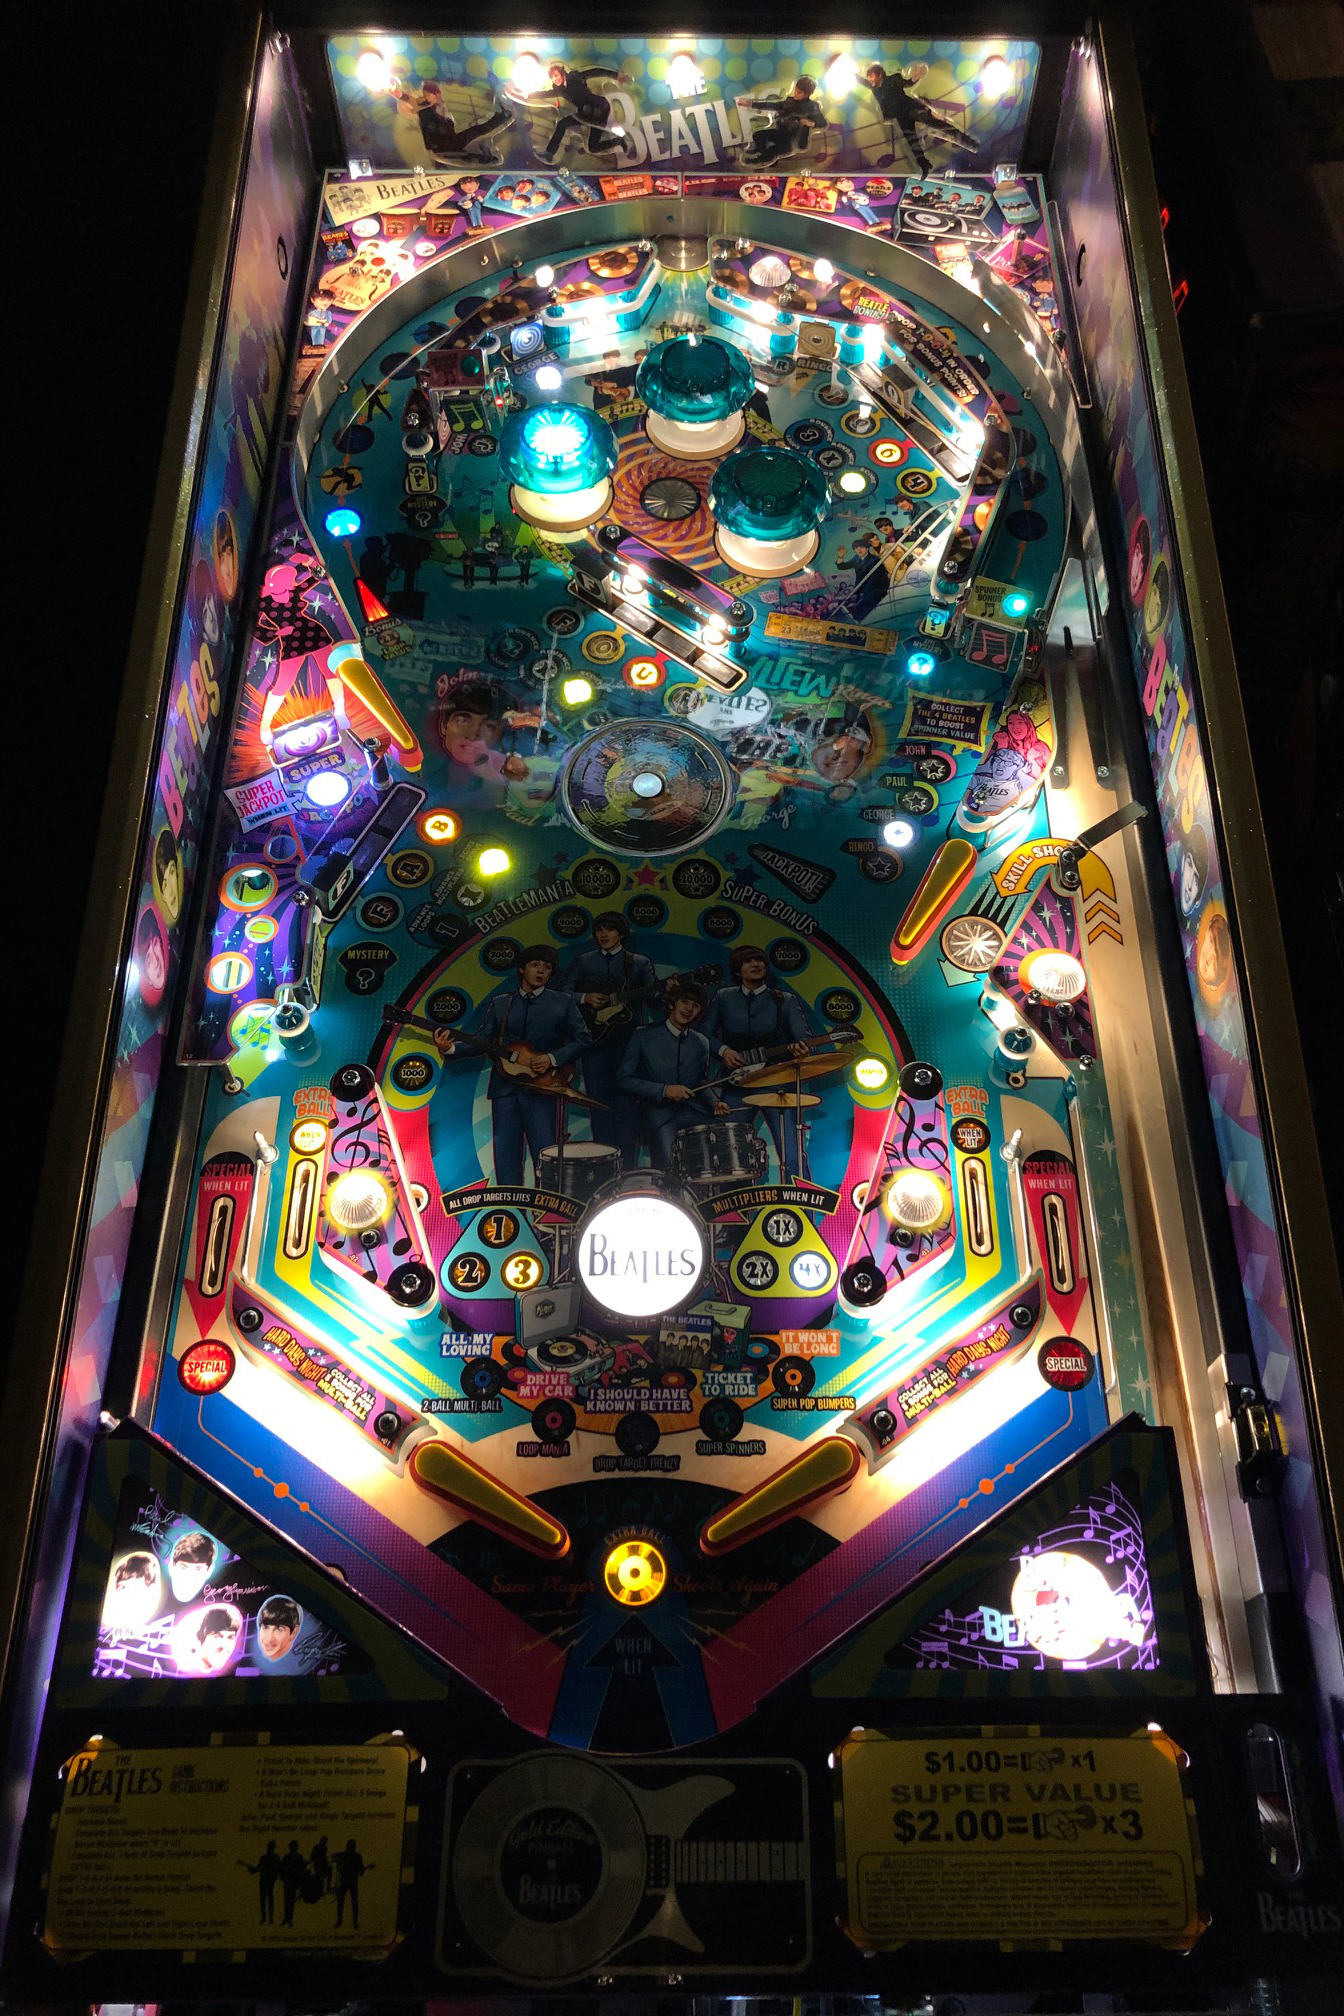 Beatles-Pinball-Machine-Playfield-2